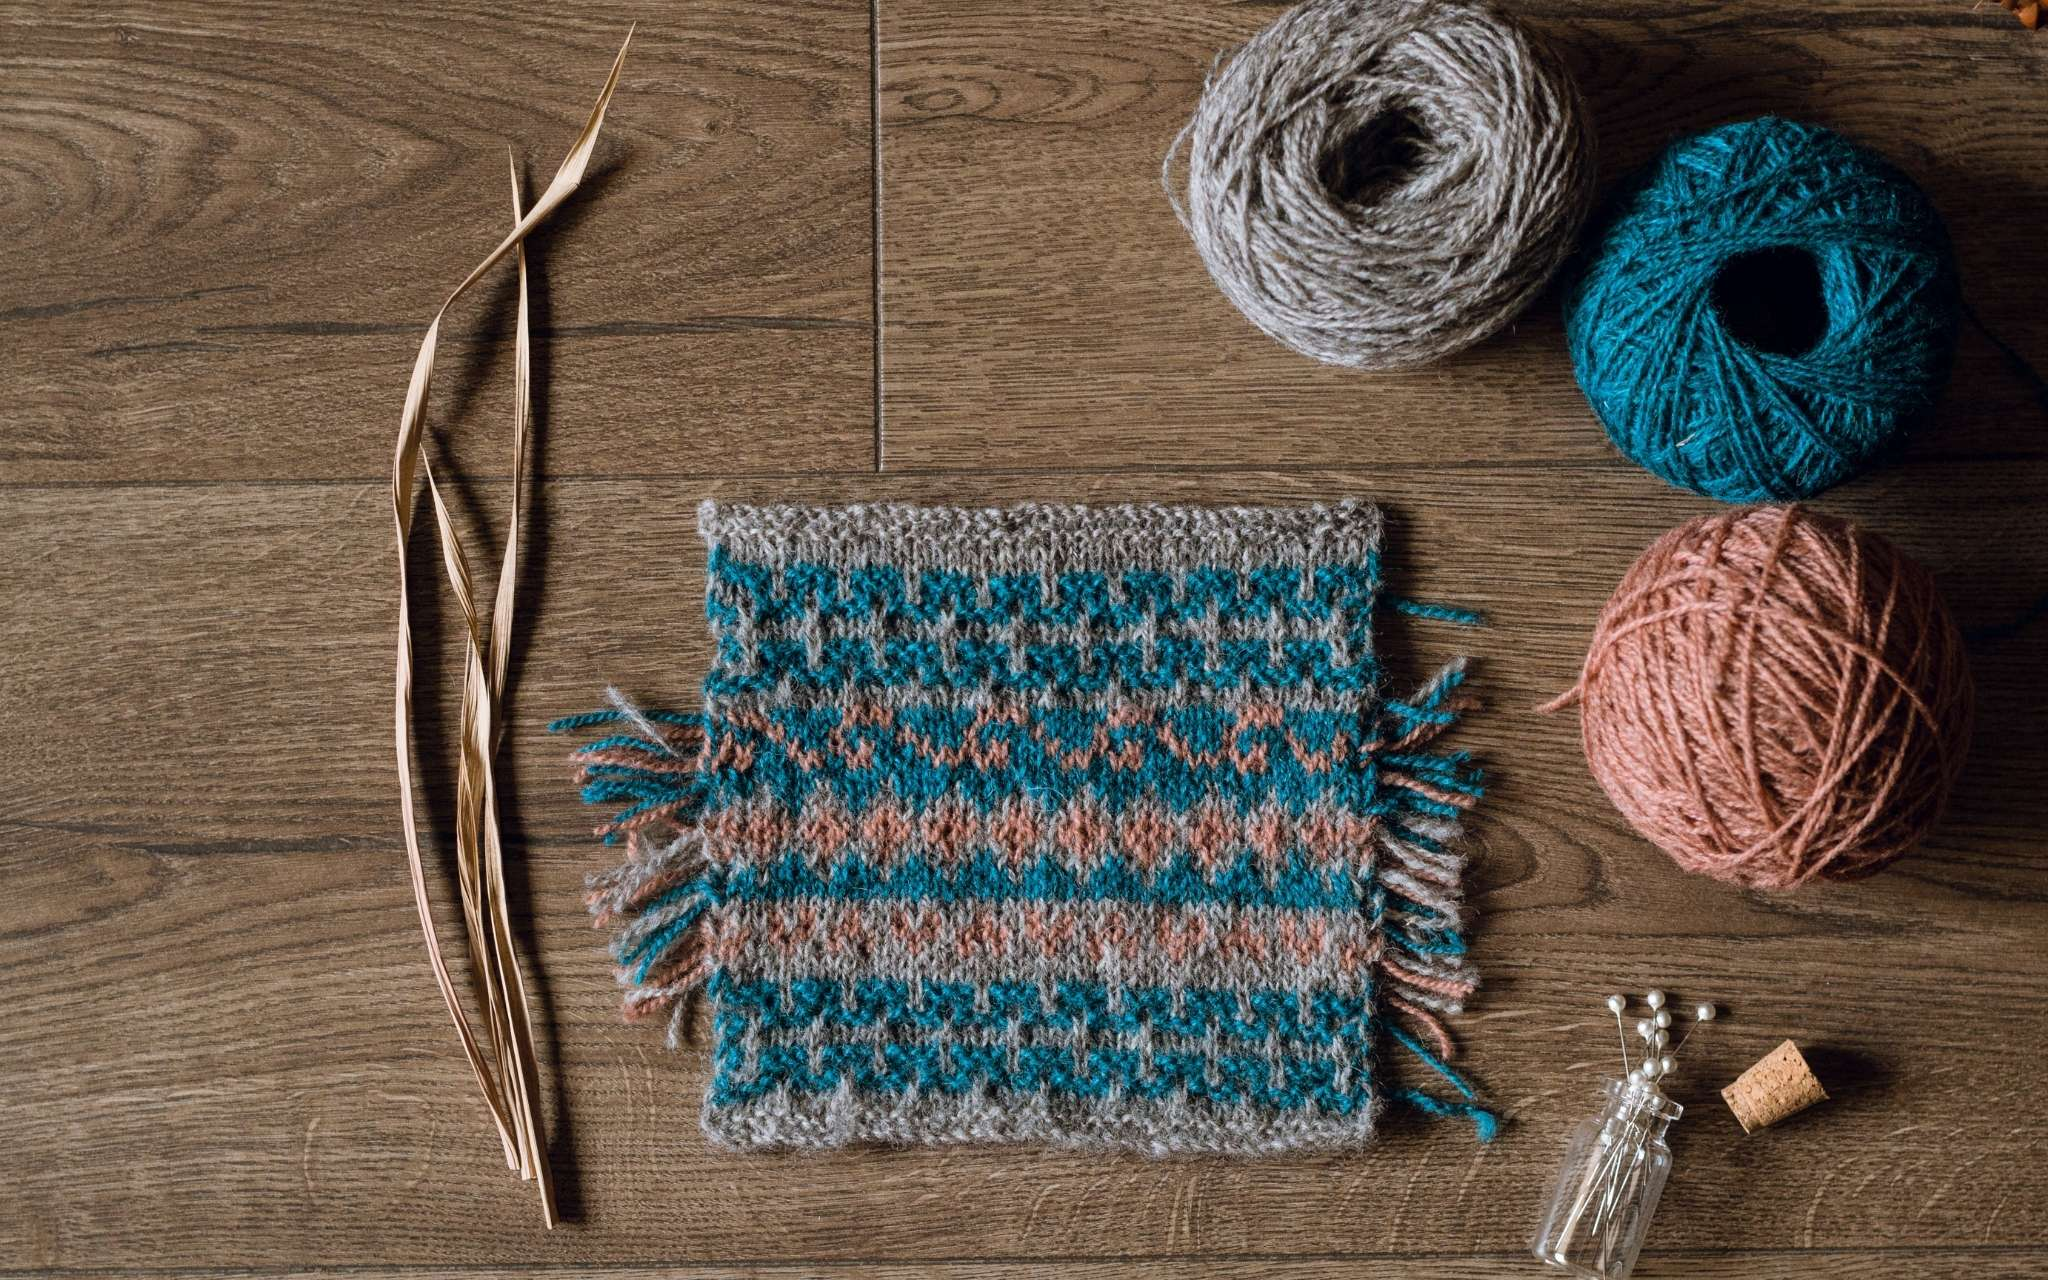 A swatch of colourwork knitting in dark blue, coral and grey laid flat on a wooden surface. There are some dried stems, scissors and a bottle of pints to the side.